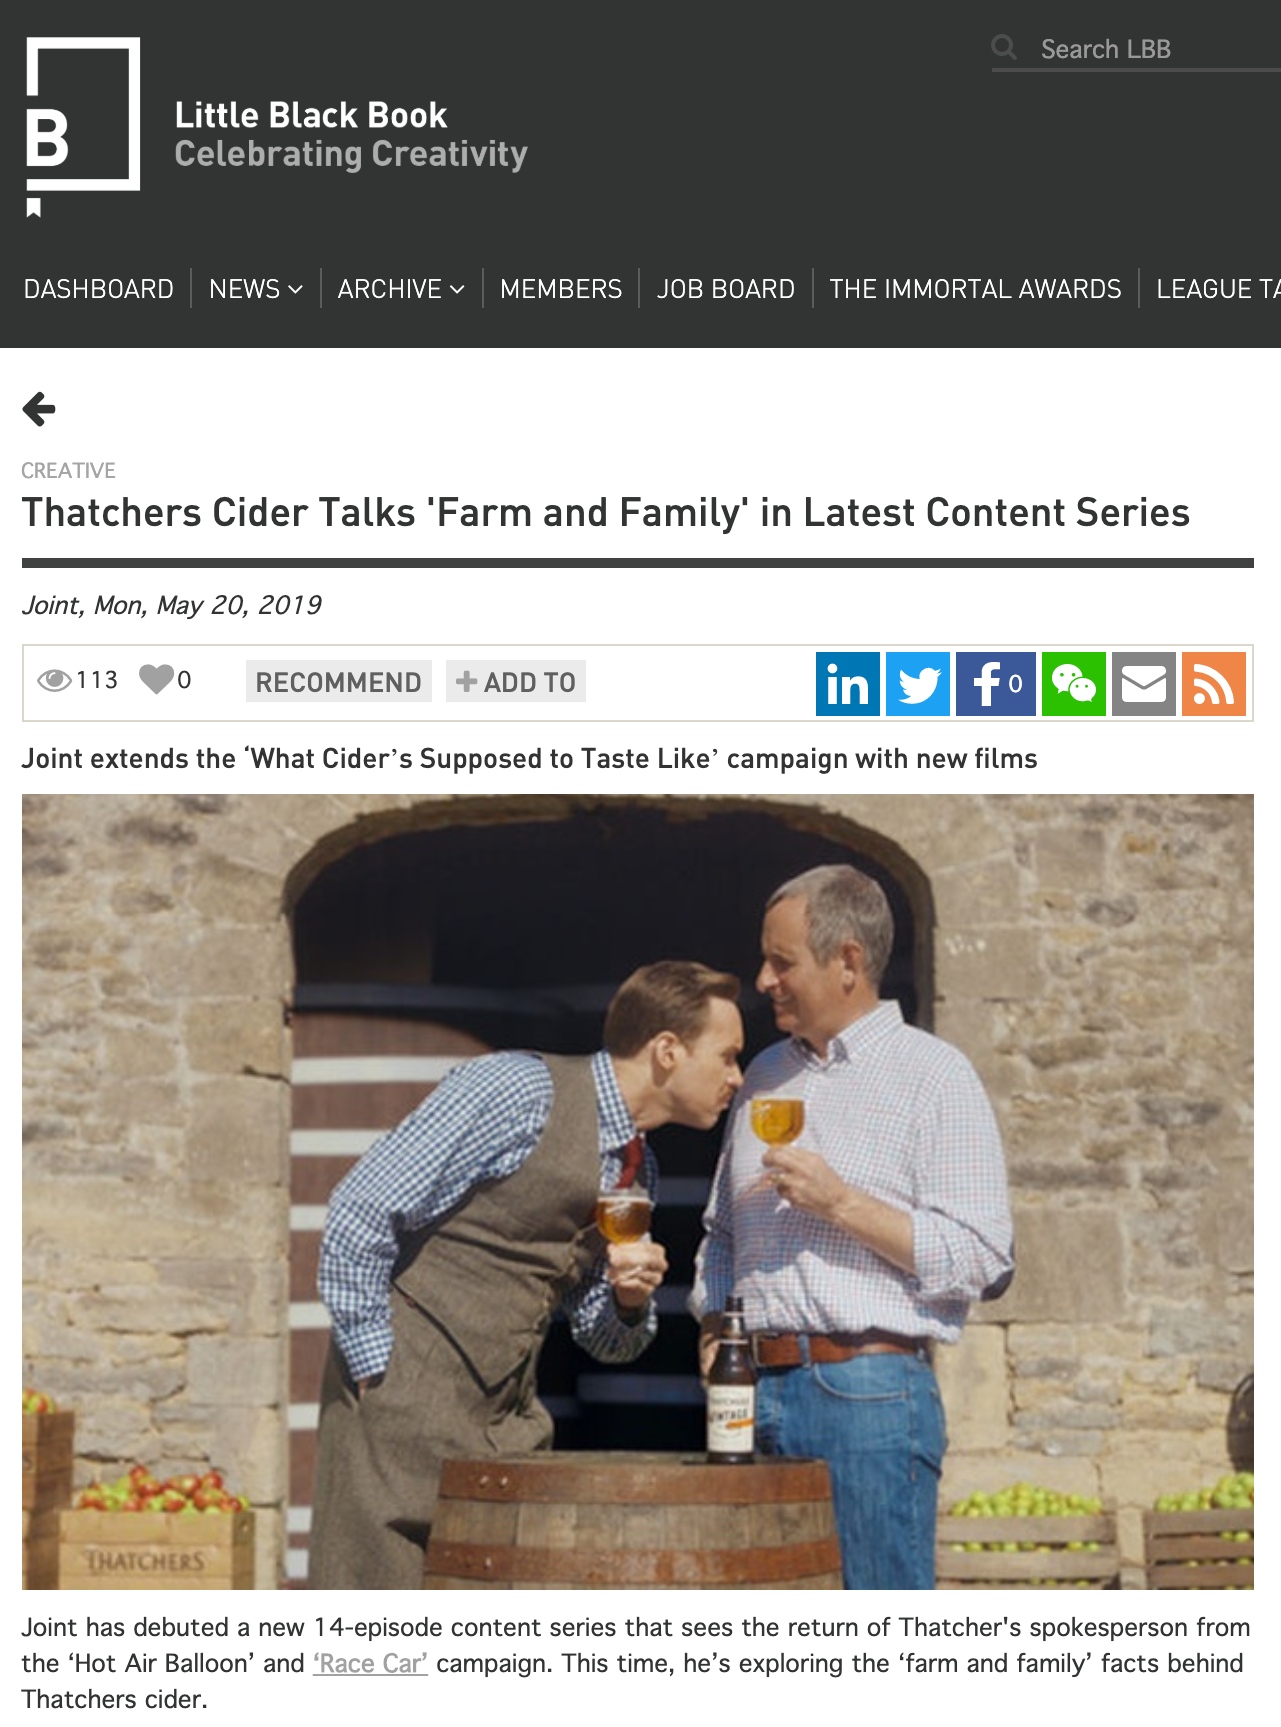 screencapture-lbbonline-news-thatchers-cider-talks-farm-and-family-in-latest-content-series-2019-07-21-19_22_43.png